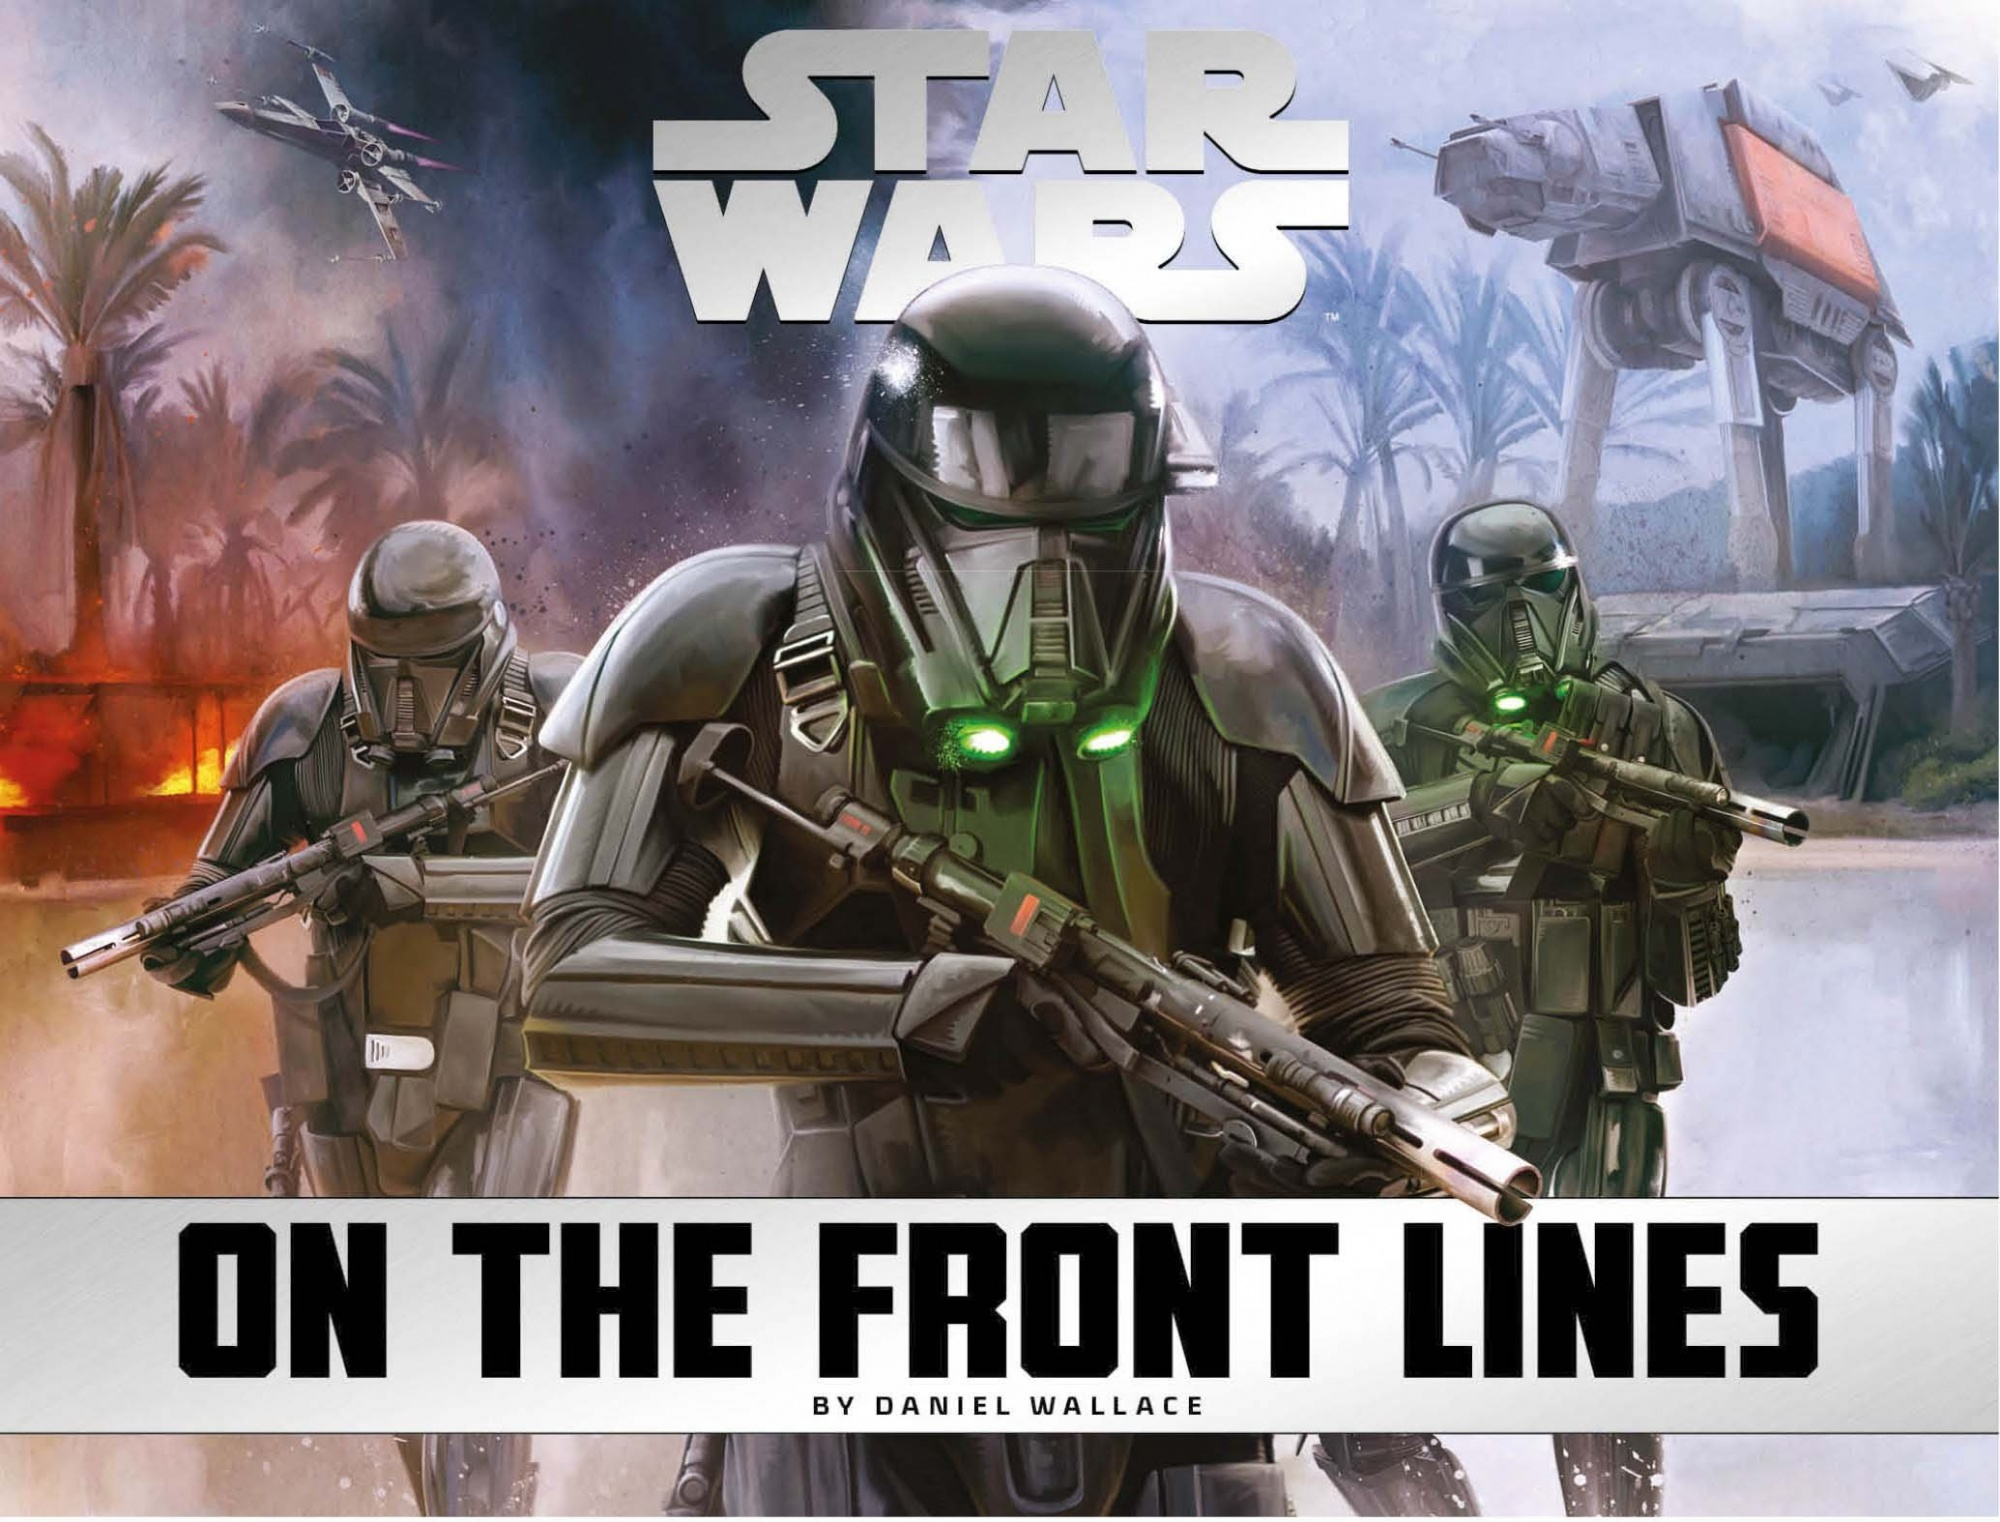 Star Wars - On the Front Lines by Daniel Wallace, ISBN: 9781785652141